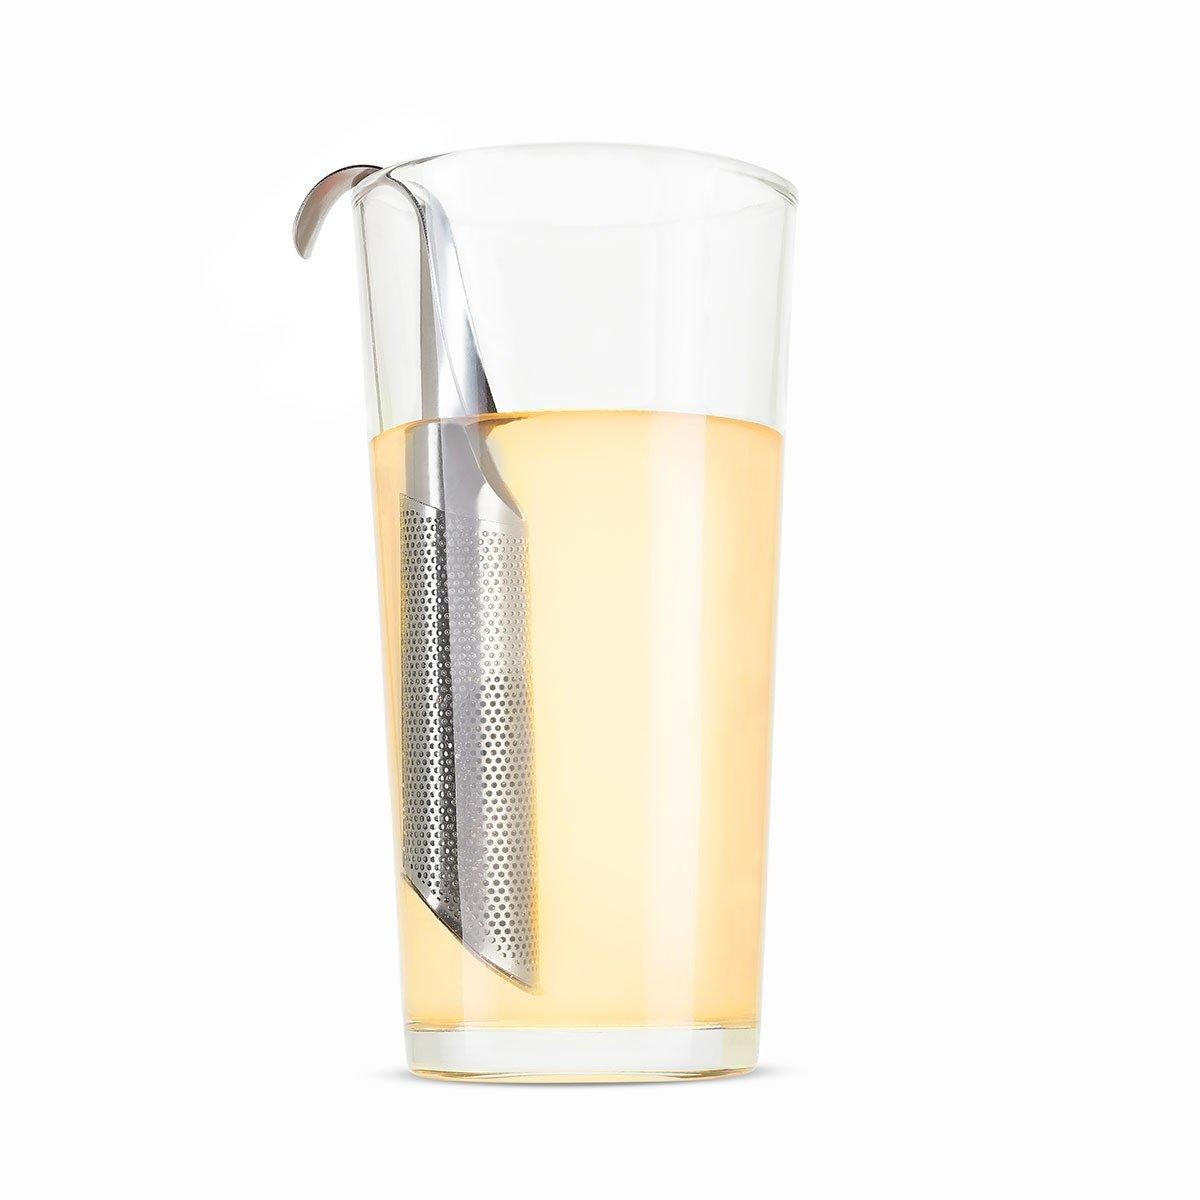 Stainless Steel Tea Infuser Stick - Tea For One | Only £12.99